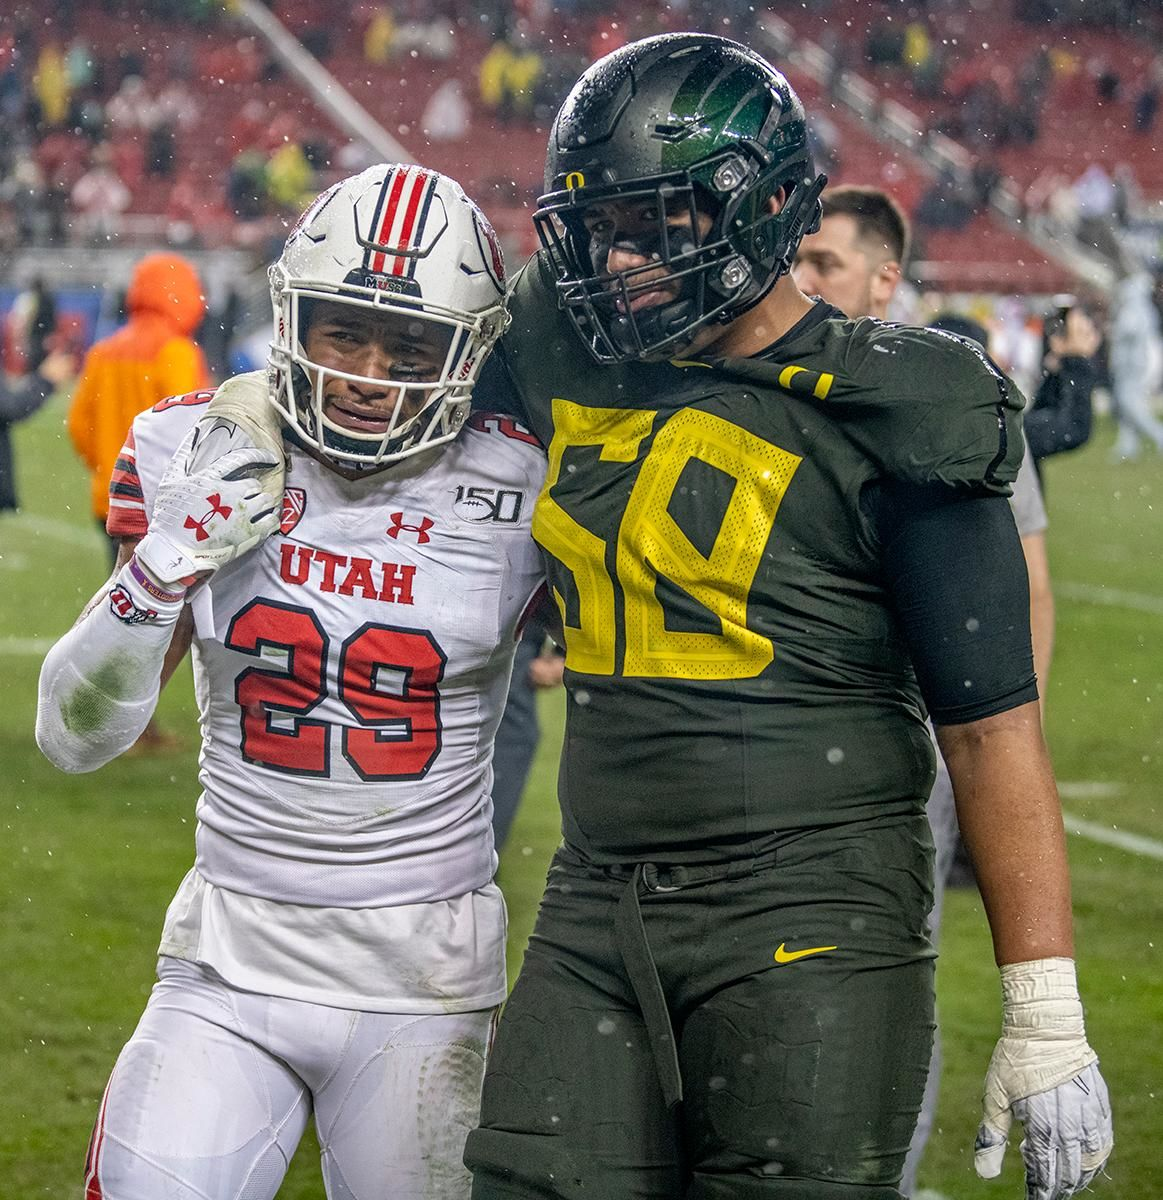 Utah's defensive back Nephi Sewell, #29, and brother Oregon's left tackle Penei Sewell, #58, share a moment of emotion on their way to thier parents in the stand.  The University of Oregon Ducks defeated the University of Utah Utes 37-15 for the Pac 12 Championship Friday night at Levi's Stadium. Oregon's running back CJ Verdell, #7, rushed for 203 all-purpose yard along with three touchdowns for the night. Verdell was named the games M-V-P for his performace. Oregon's safey Brady Breeze, #25, contributed 9 tackles and one interception. Oregon's defensive end Kayvon Thibodeaux, #5, sacked Utah's quarterback Tyler Huntly, #1, for a total of three times. Oregon's quarterback Justin Herbert, #10, passed for 193 yards with one touchdown. The Oregon Ducks will represent the Pac 12 for the upcoming Rose Bowl game in the new year. Photo by Jeffrey Price